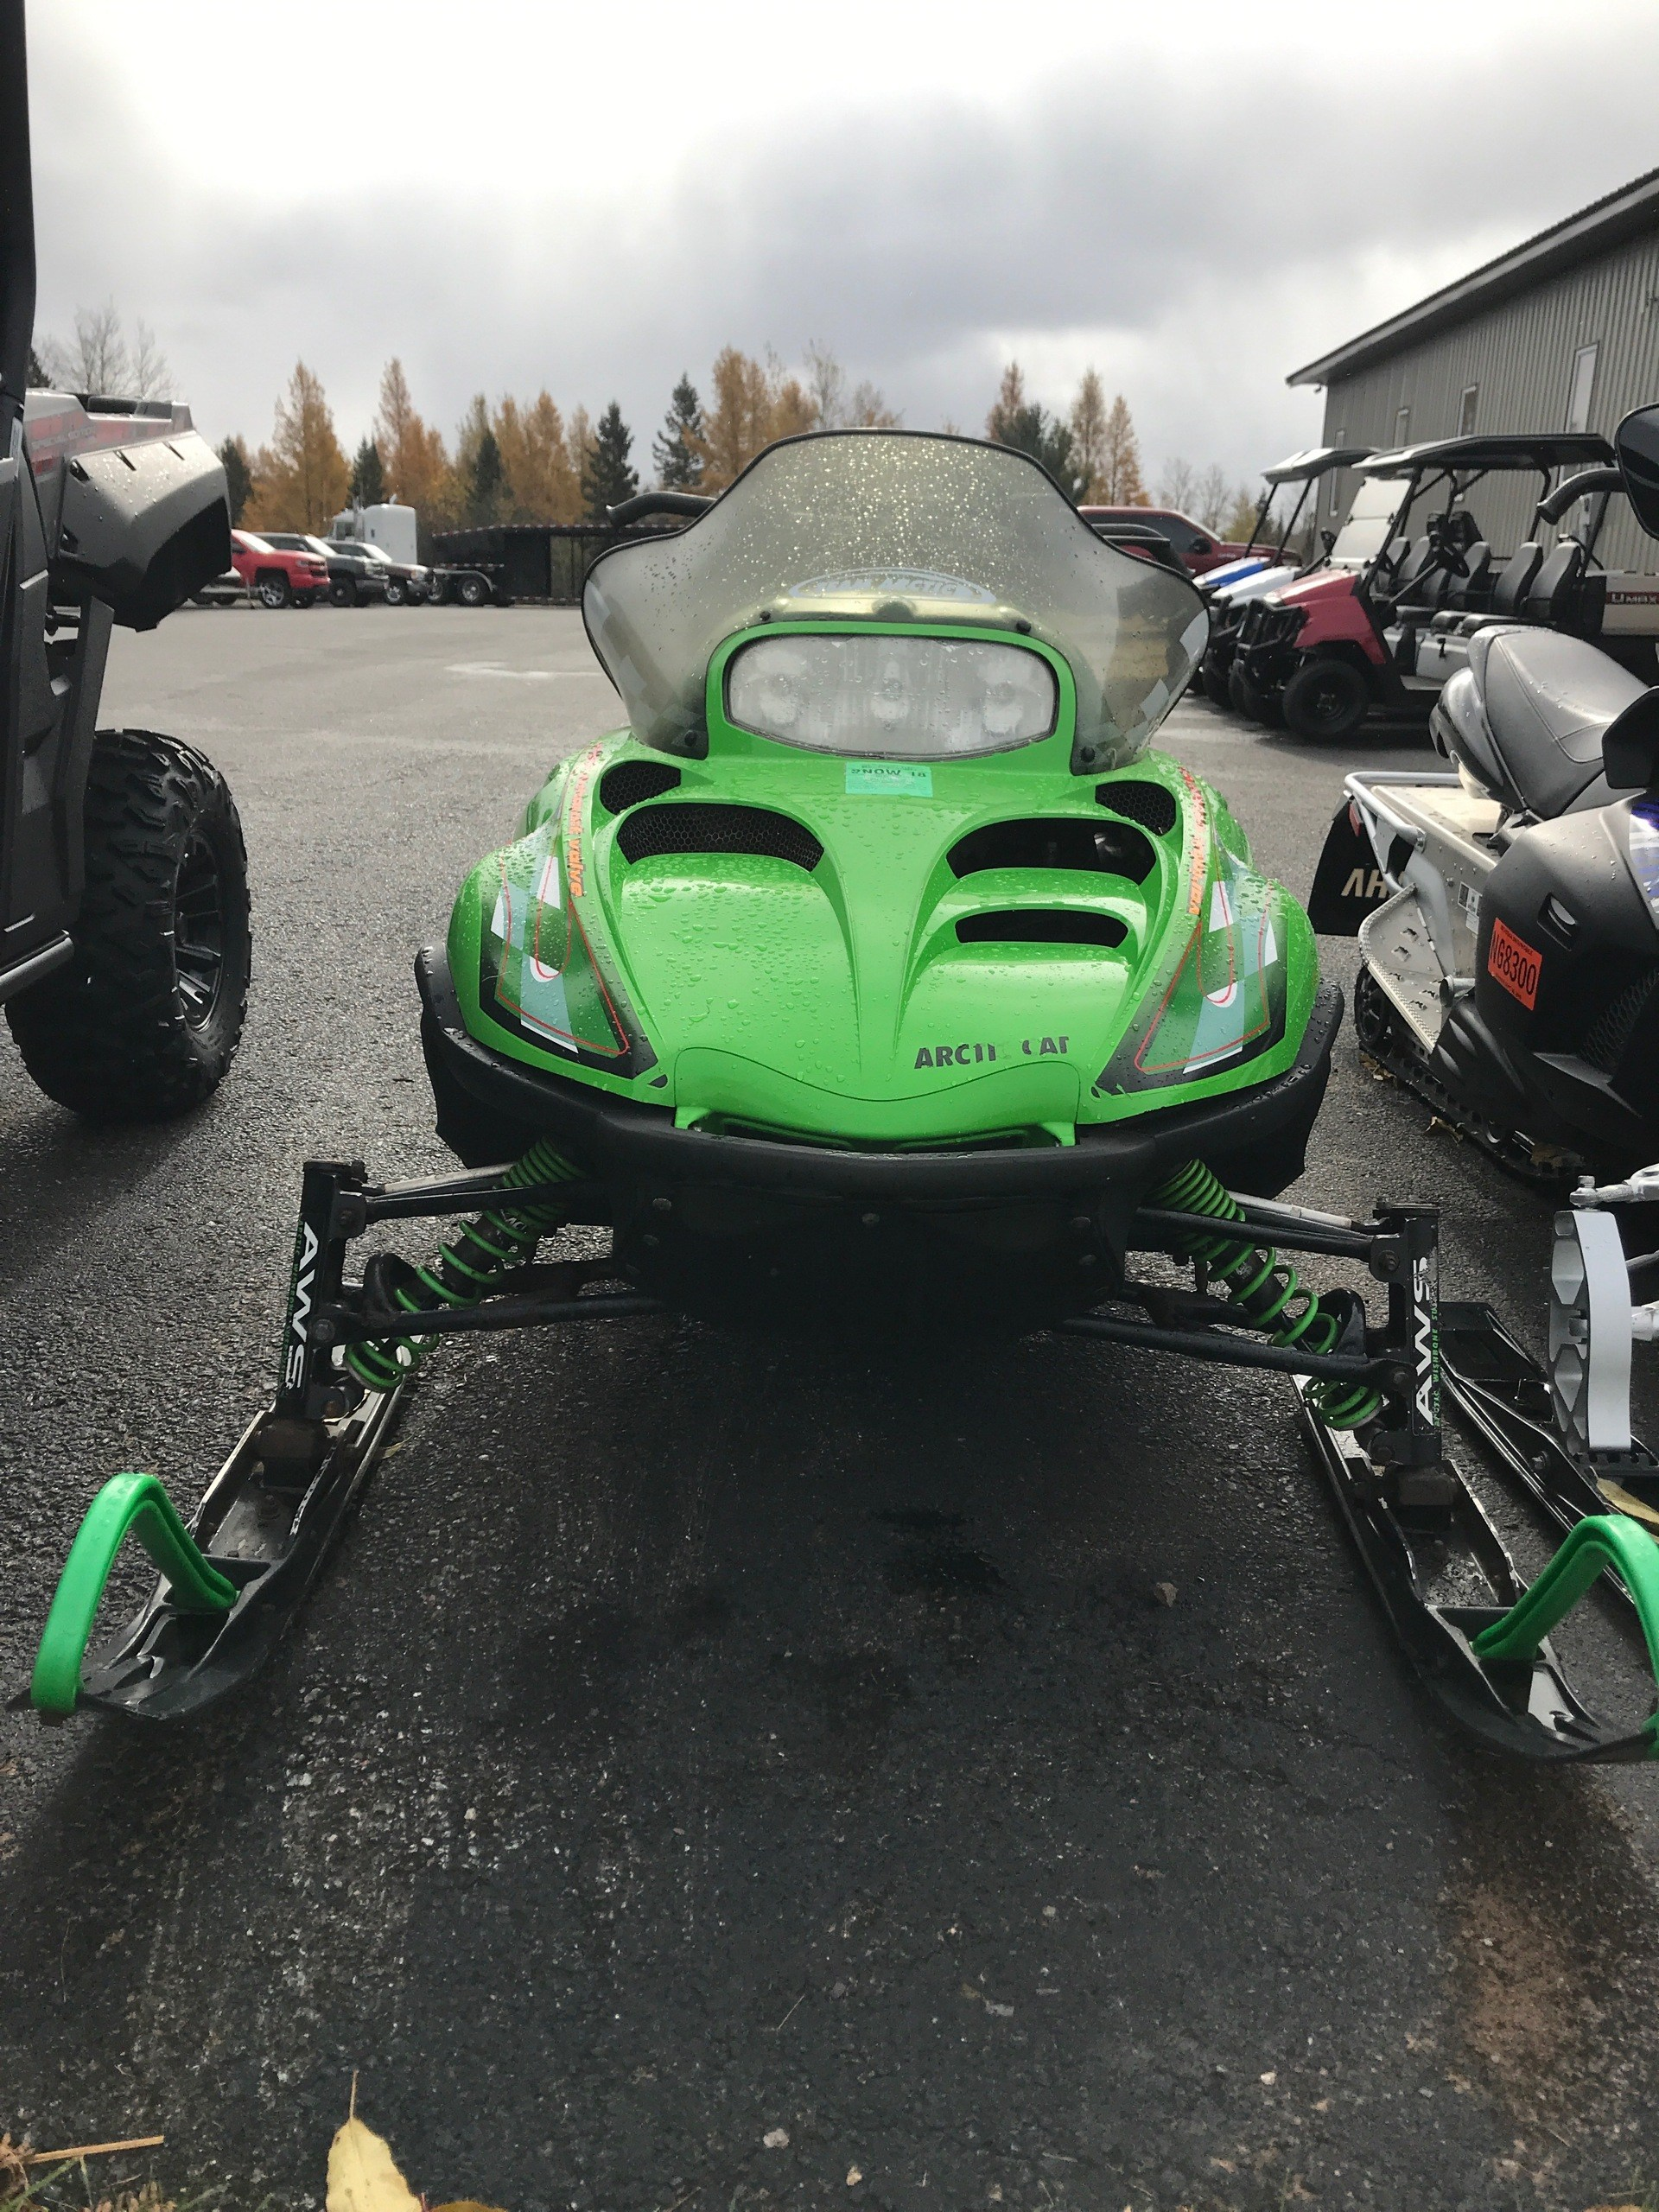 2001 Arctic Cat ZR® 800 in Ishpeming, Michigan - Photo 1